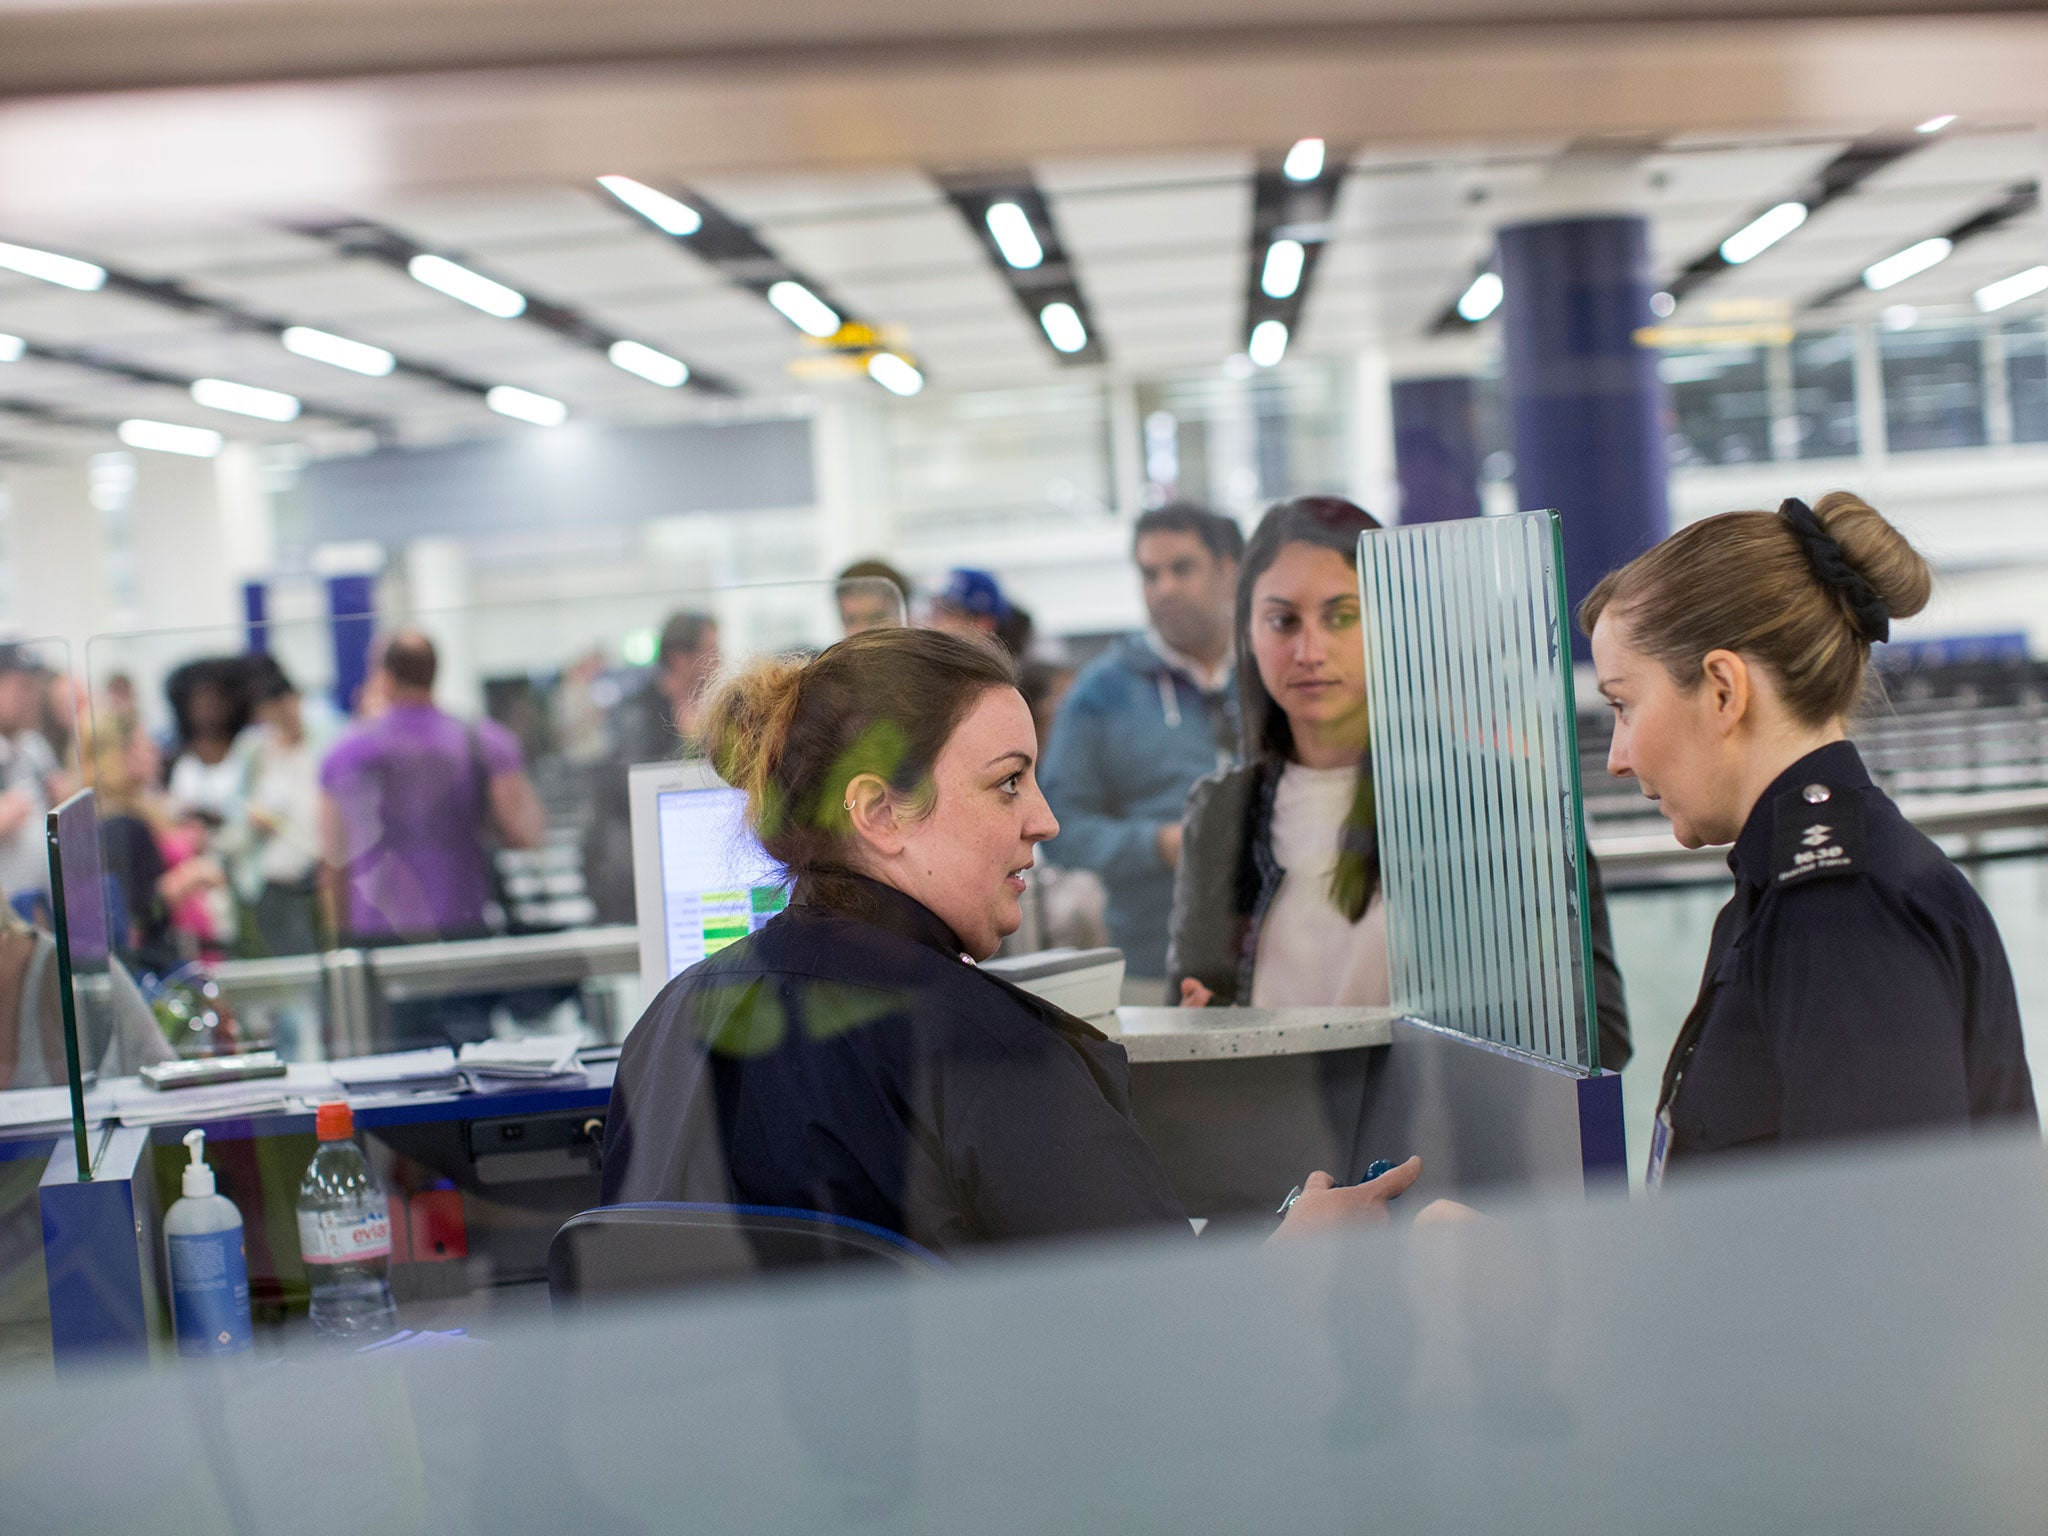 UK immigration: Business groups call for urgent action to avert skills crisis as net migration plummets